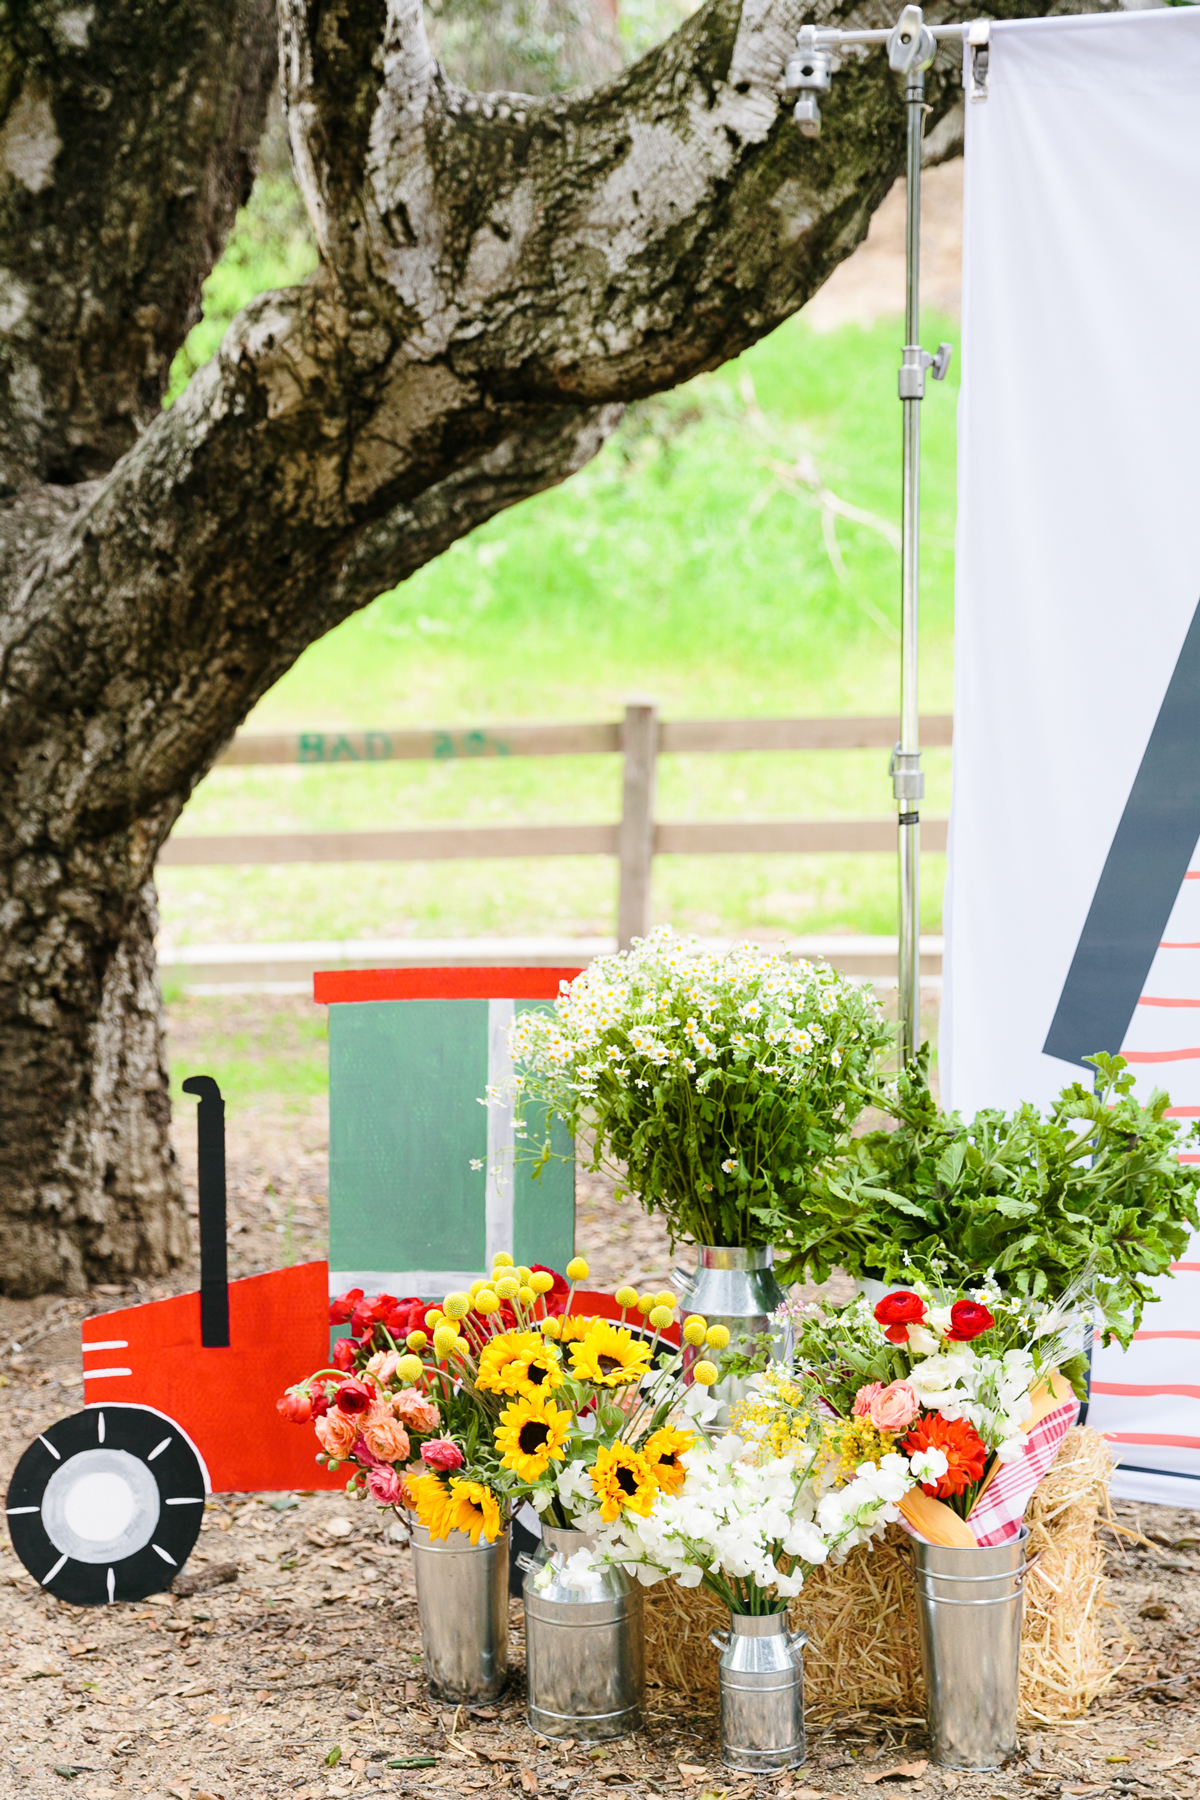 charlottes web childrens party outdoor photo booth with tractor cutout and flowers